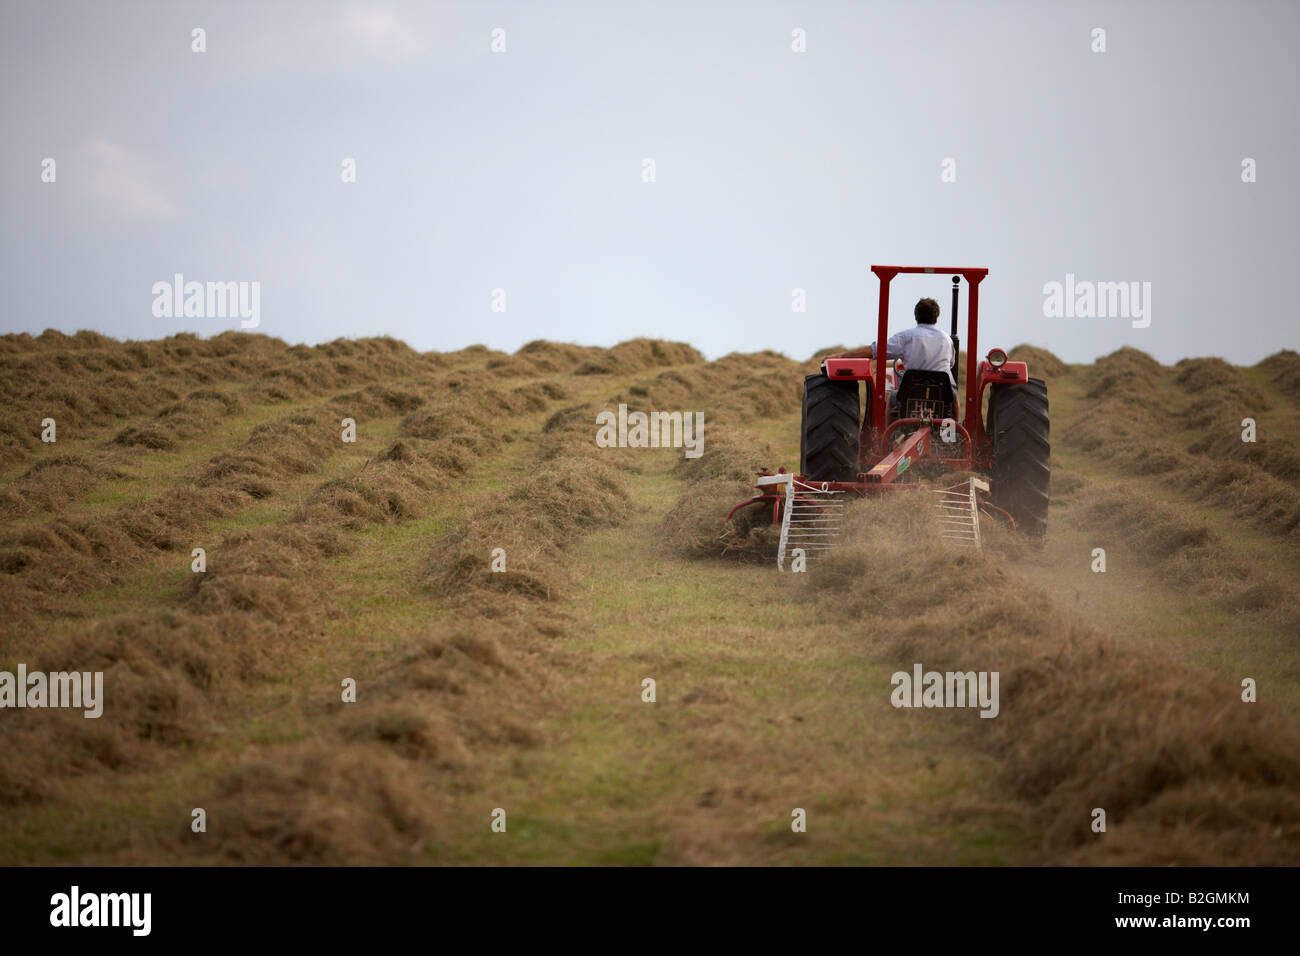 Tractor Attachment Stock Photos & Tractor Attachment Stock Images ...